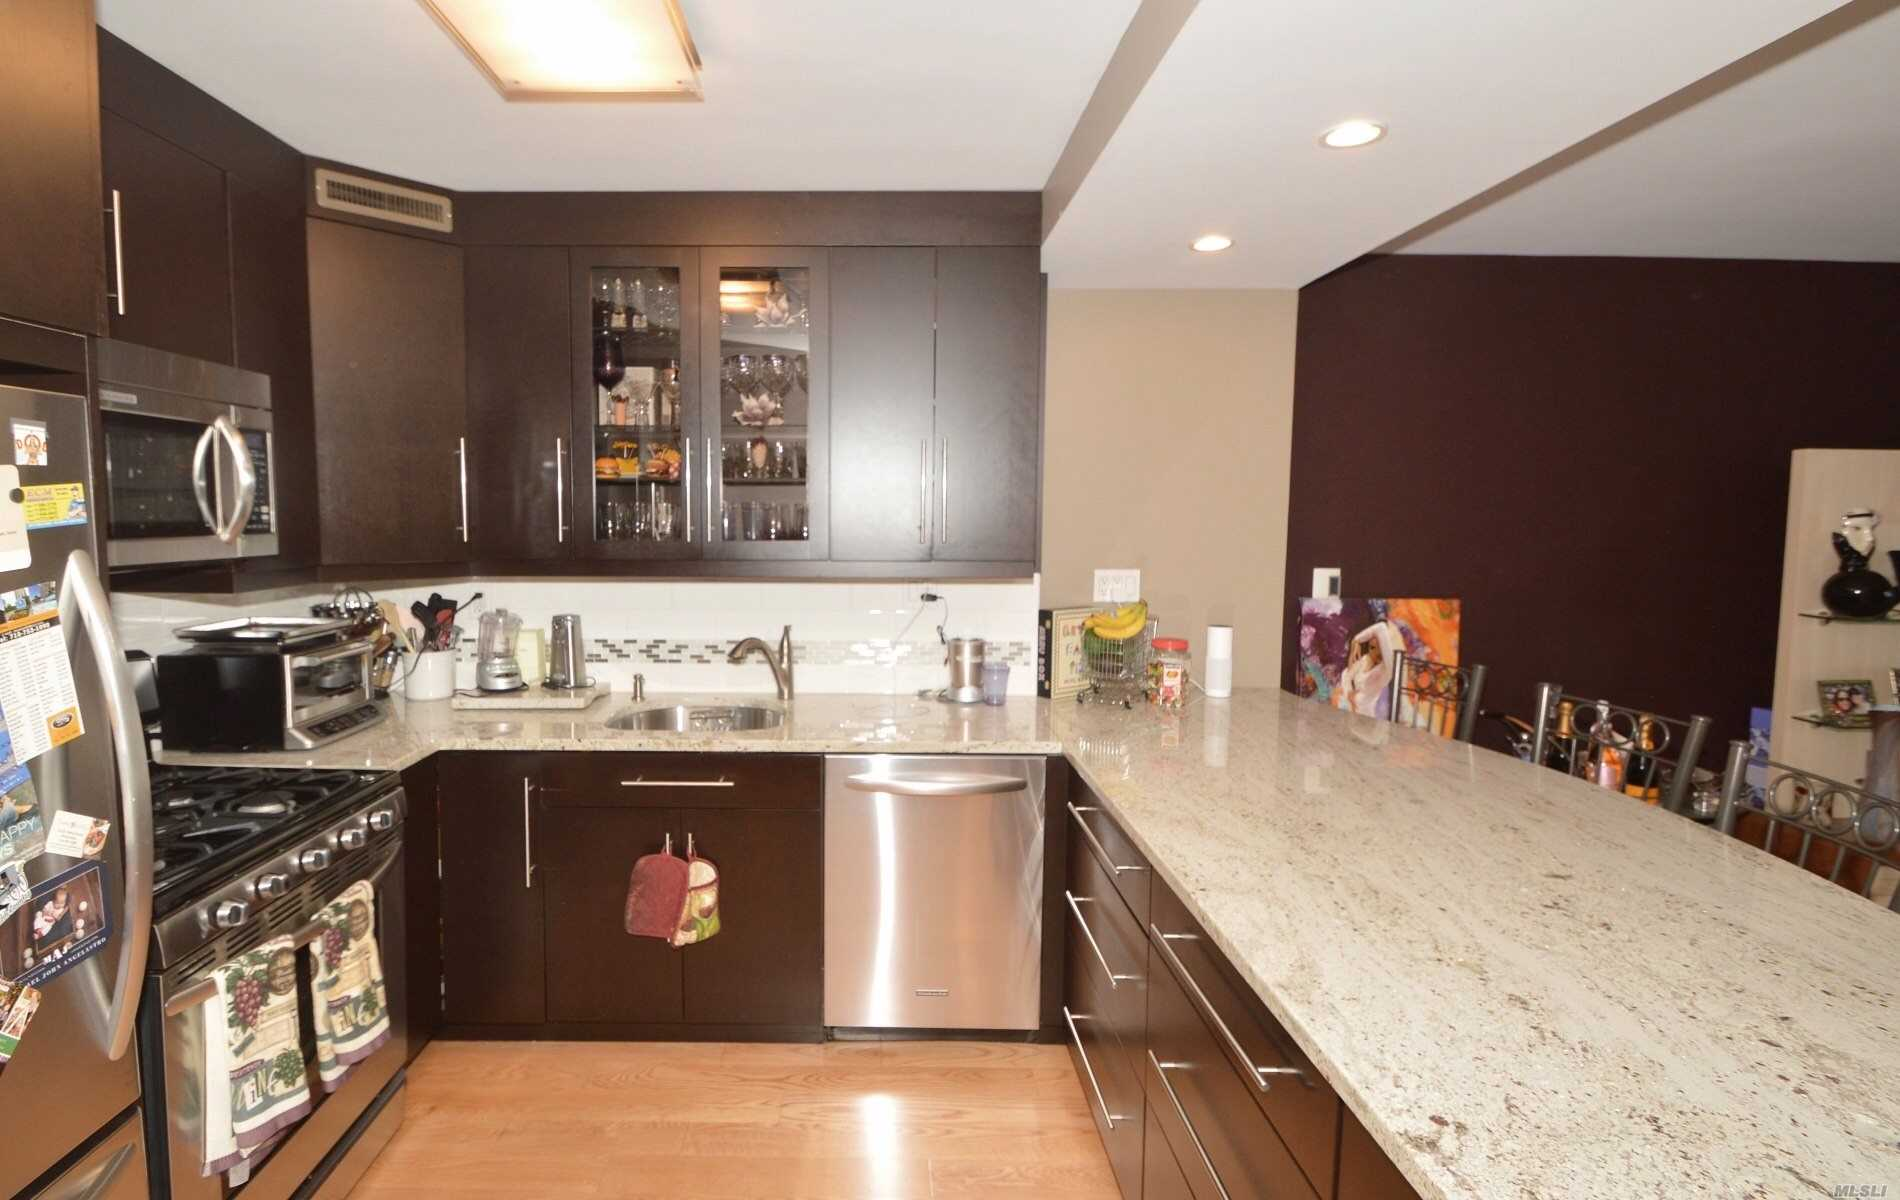 Resort-Style Living On Little Neck Bay, Gorgeous Upscale One Bedroom, Featuring Huge Open Eat-In Kitchen With Large Island With 4 Stools, Stainless Steel Appliances, Granite Countertops, Hardwood Floors, Large Bedroom With Built-In Customed Closets, Upscale Bathroom, Lots Of Customed Closets, Terrace, 30 Mins. From City By Lirr Or Express Bus, 24Hr Doorman, Pool, Tennis, Gym, Stores, Reserved Indoor Parking.